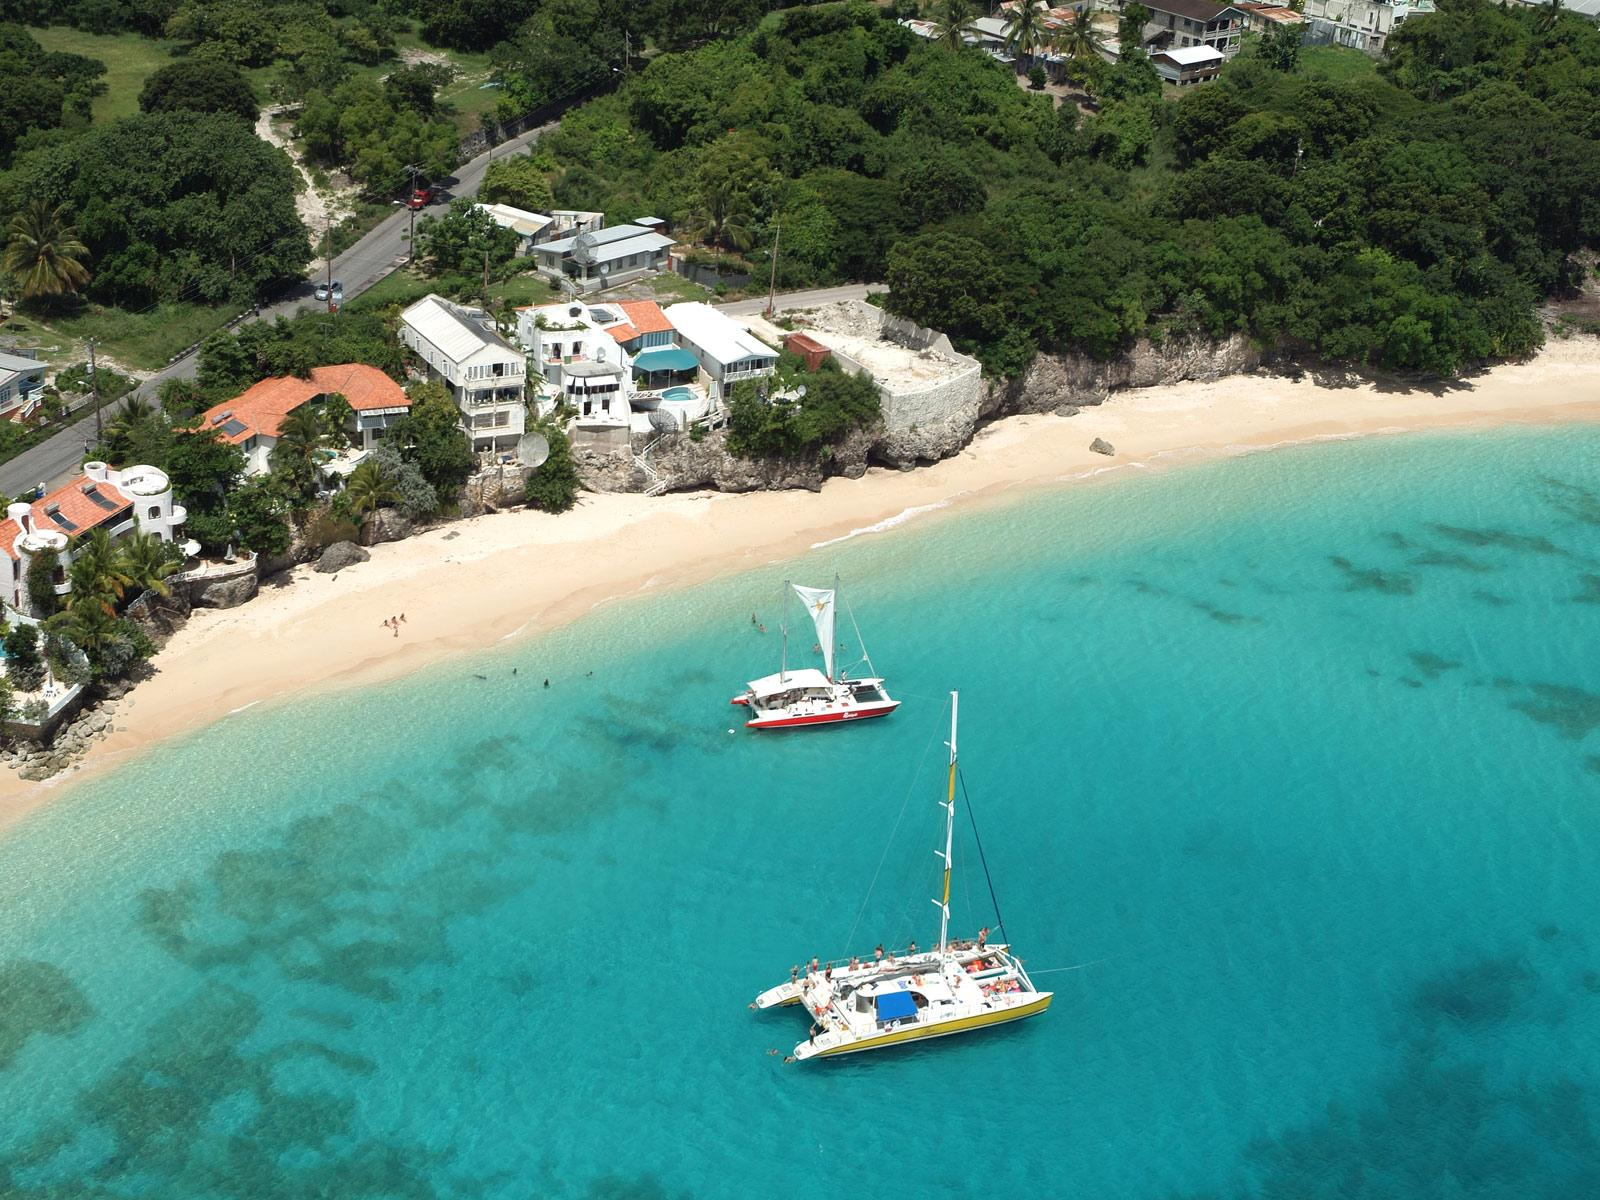 Celebrity to reboot cruises this summer Barbados